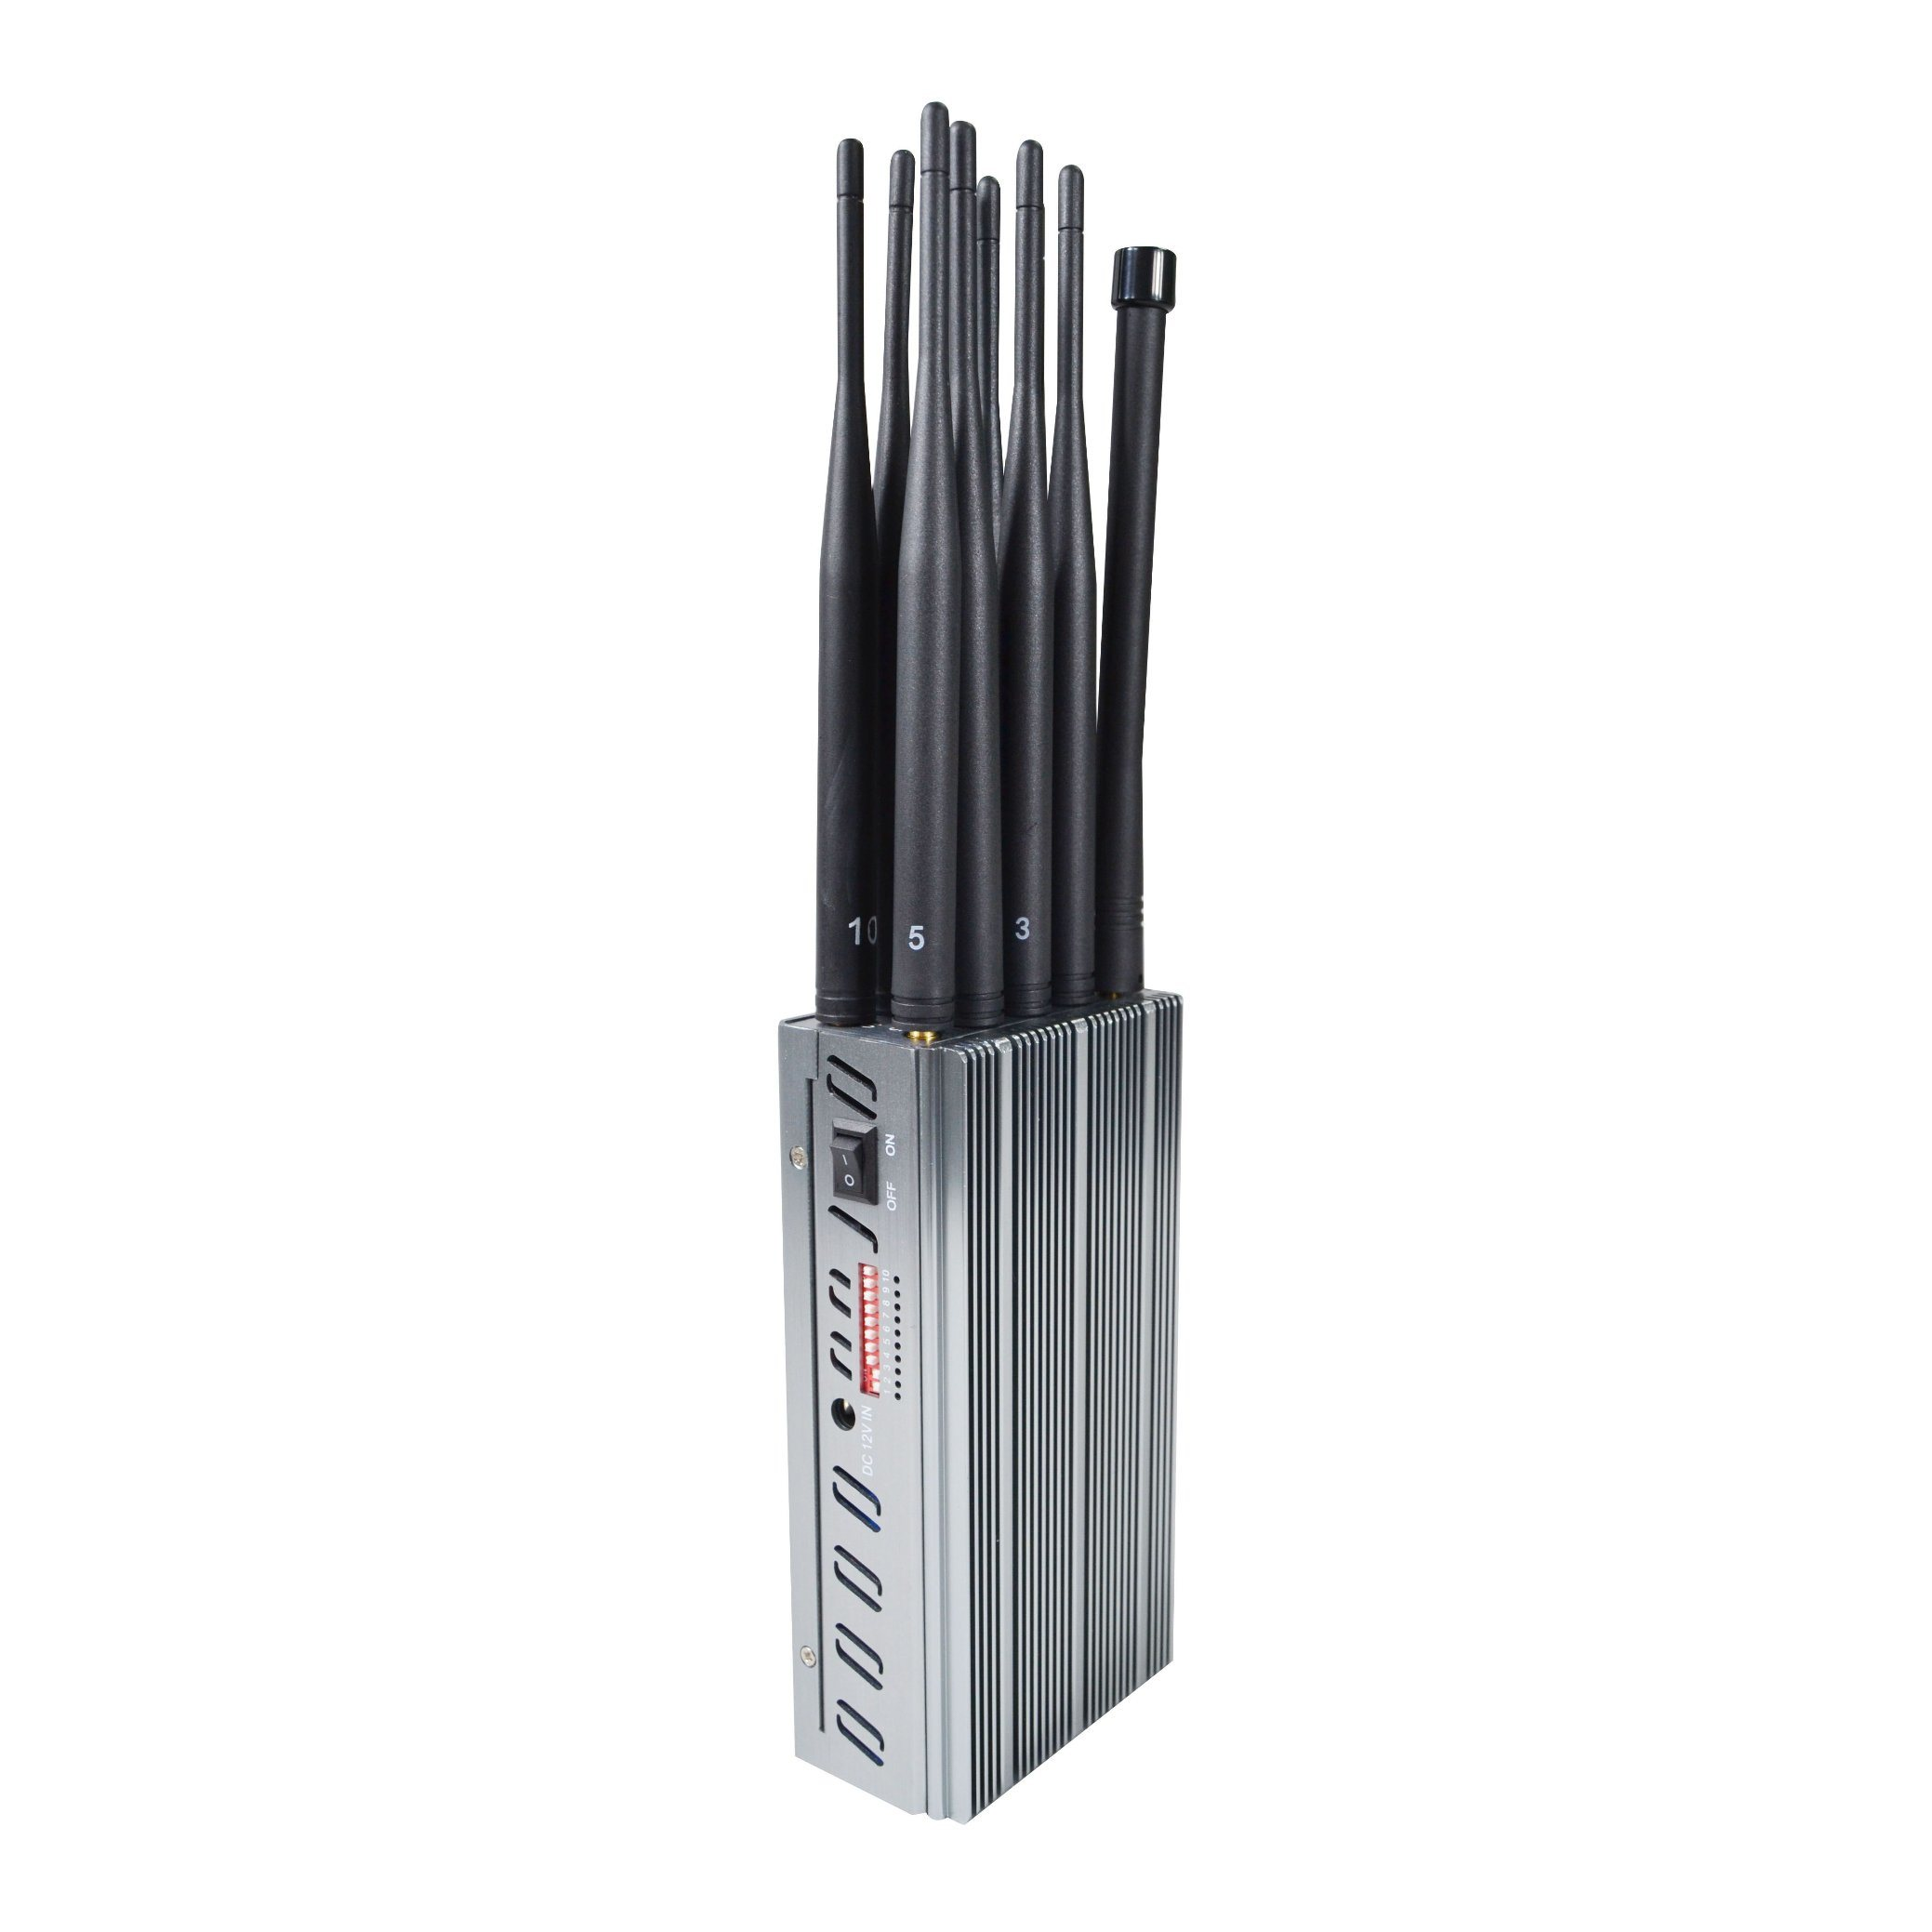 wireless phone jammer network - China Update Version of Portable Jammers with 8000mA Battery and 10 Antennas Signal Blockers - China 8000mA Battery Jammer, Large Volume Power Signal Blocker